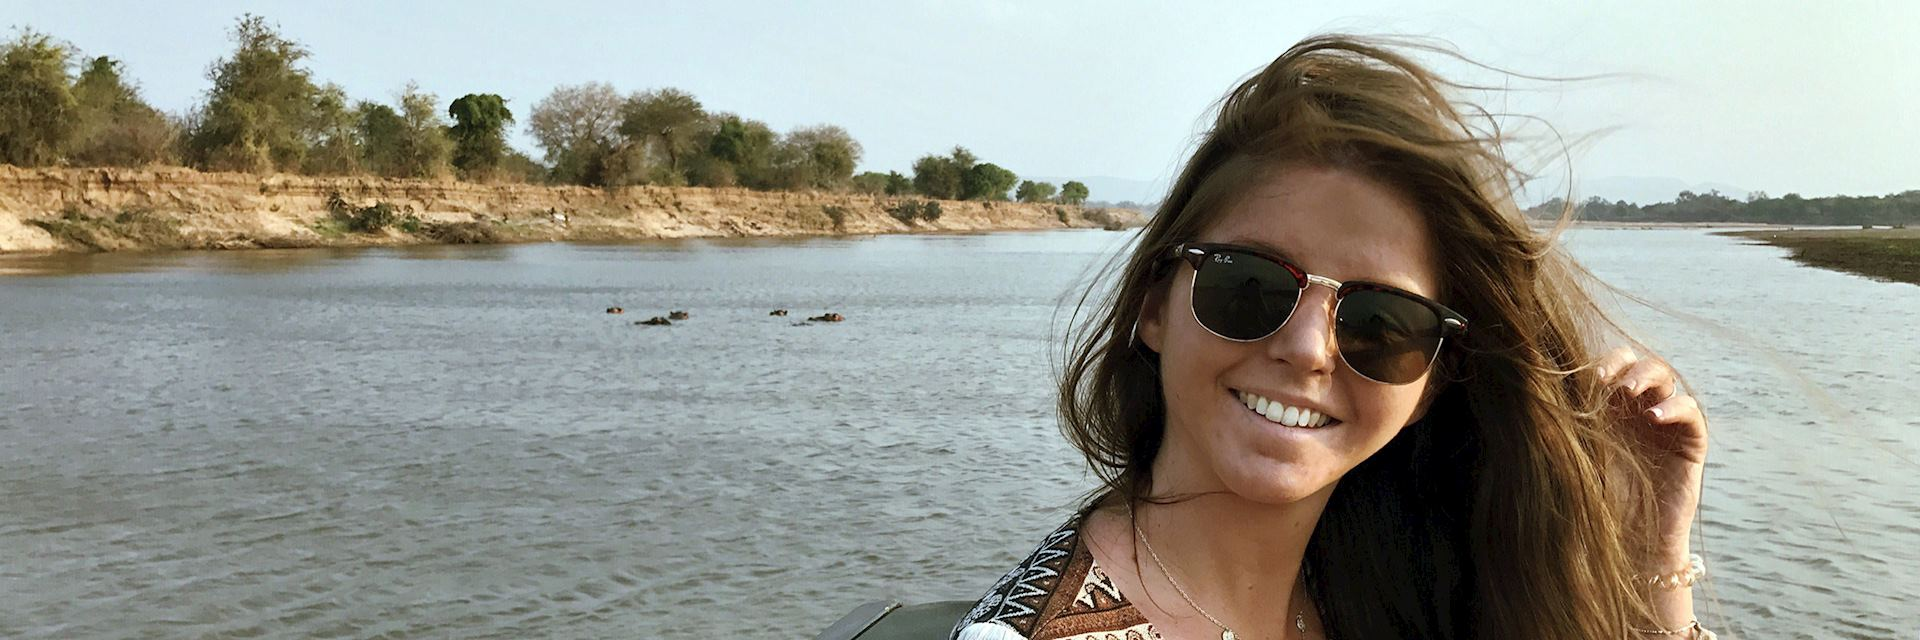 Louise on the Luangwa River, Zambia